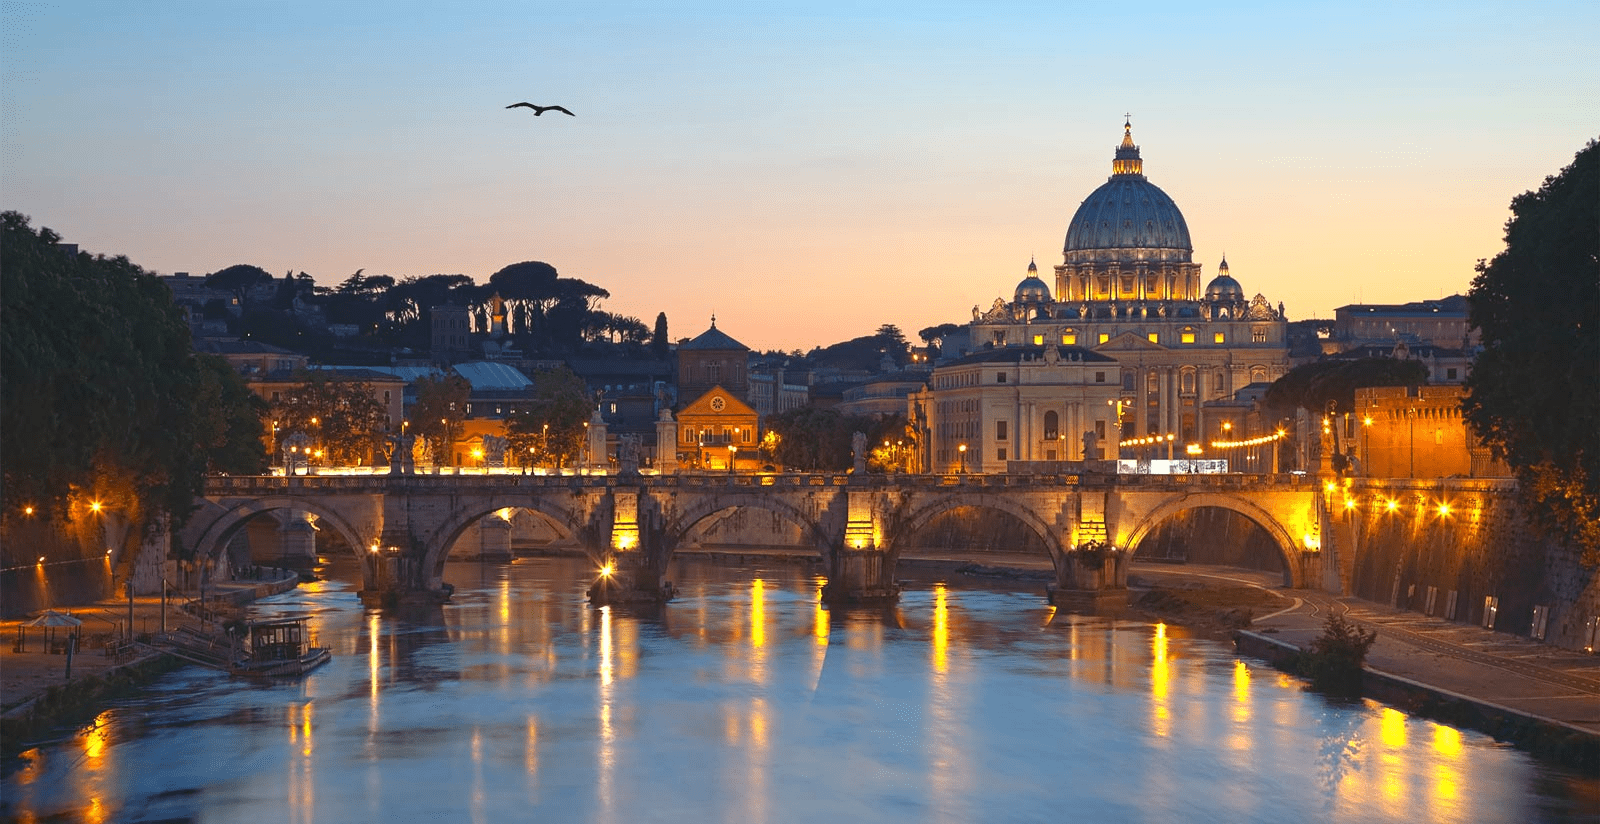 Romantic view of Rome at sunset